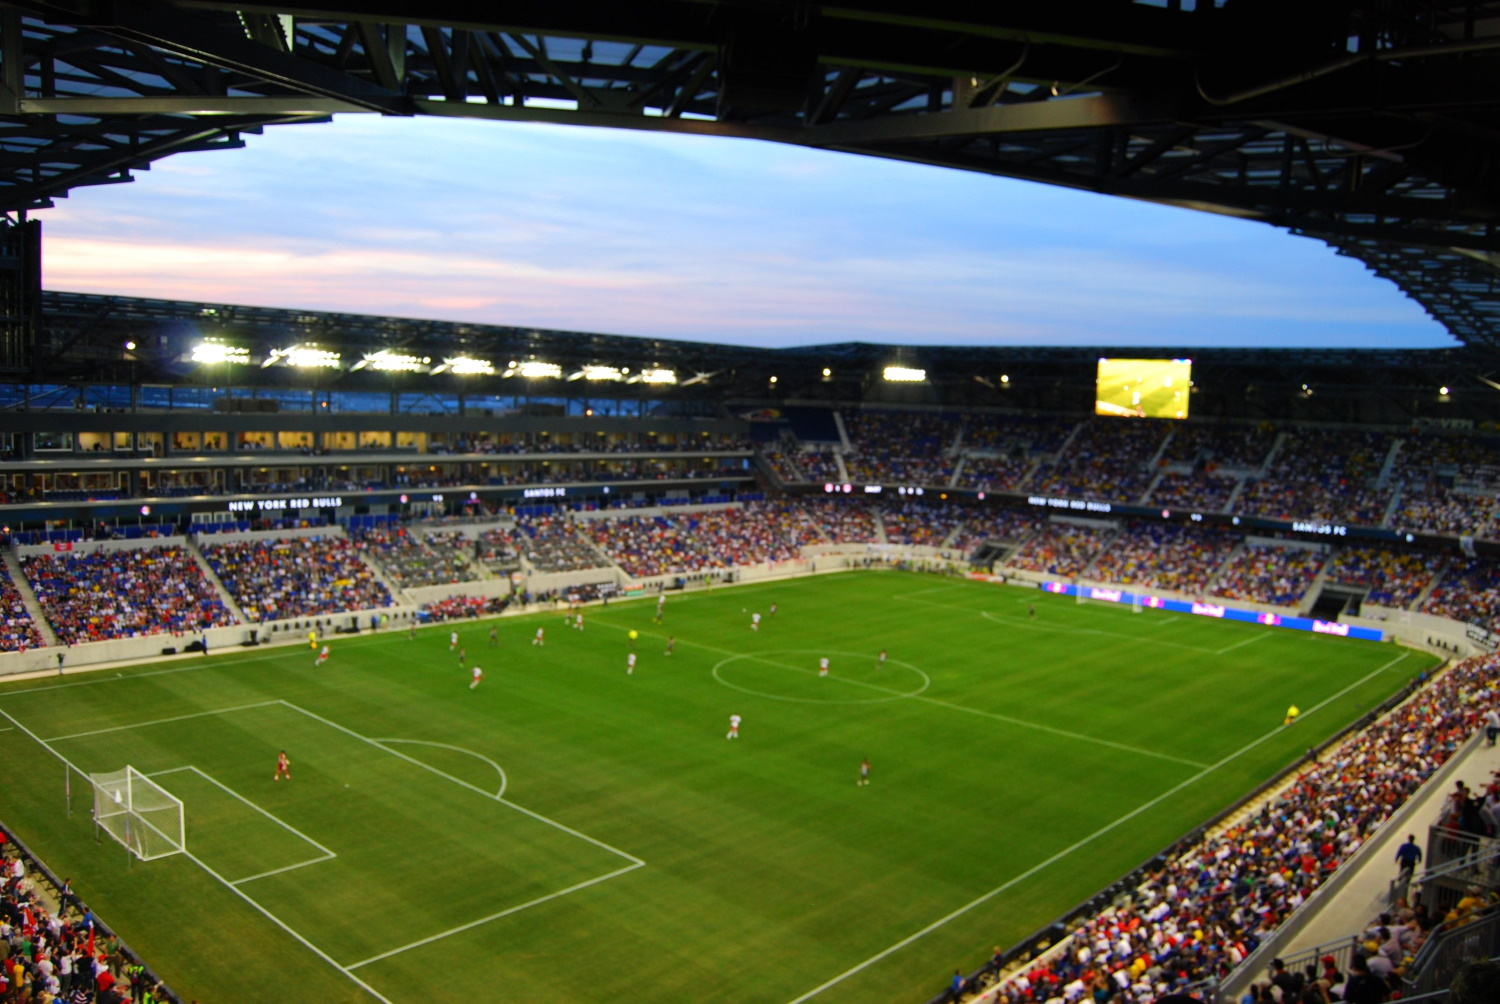 US Soccer Players Can Be Collected, Traded in Tokenized Fantasy Game